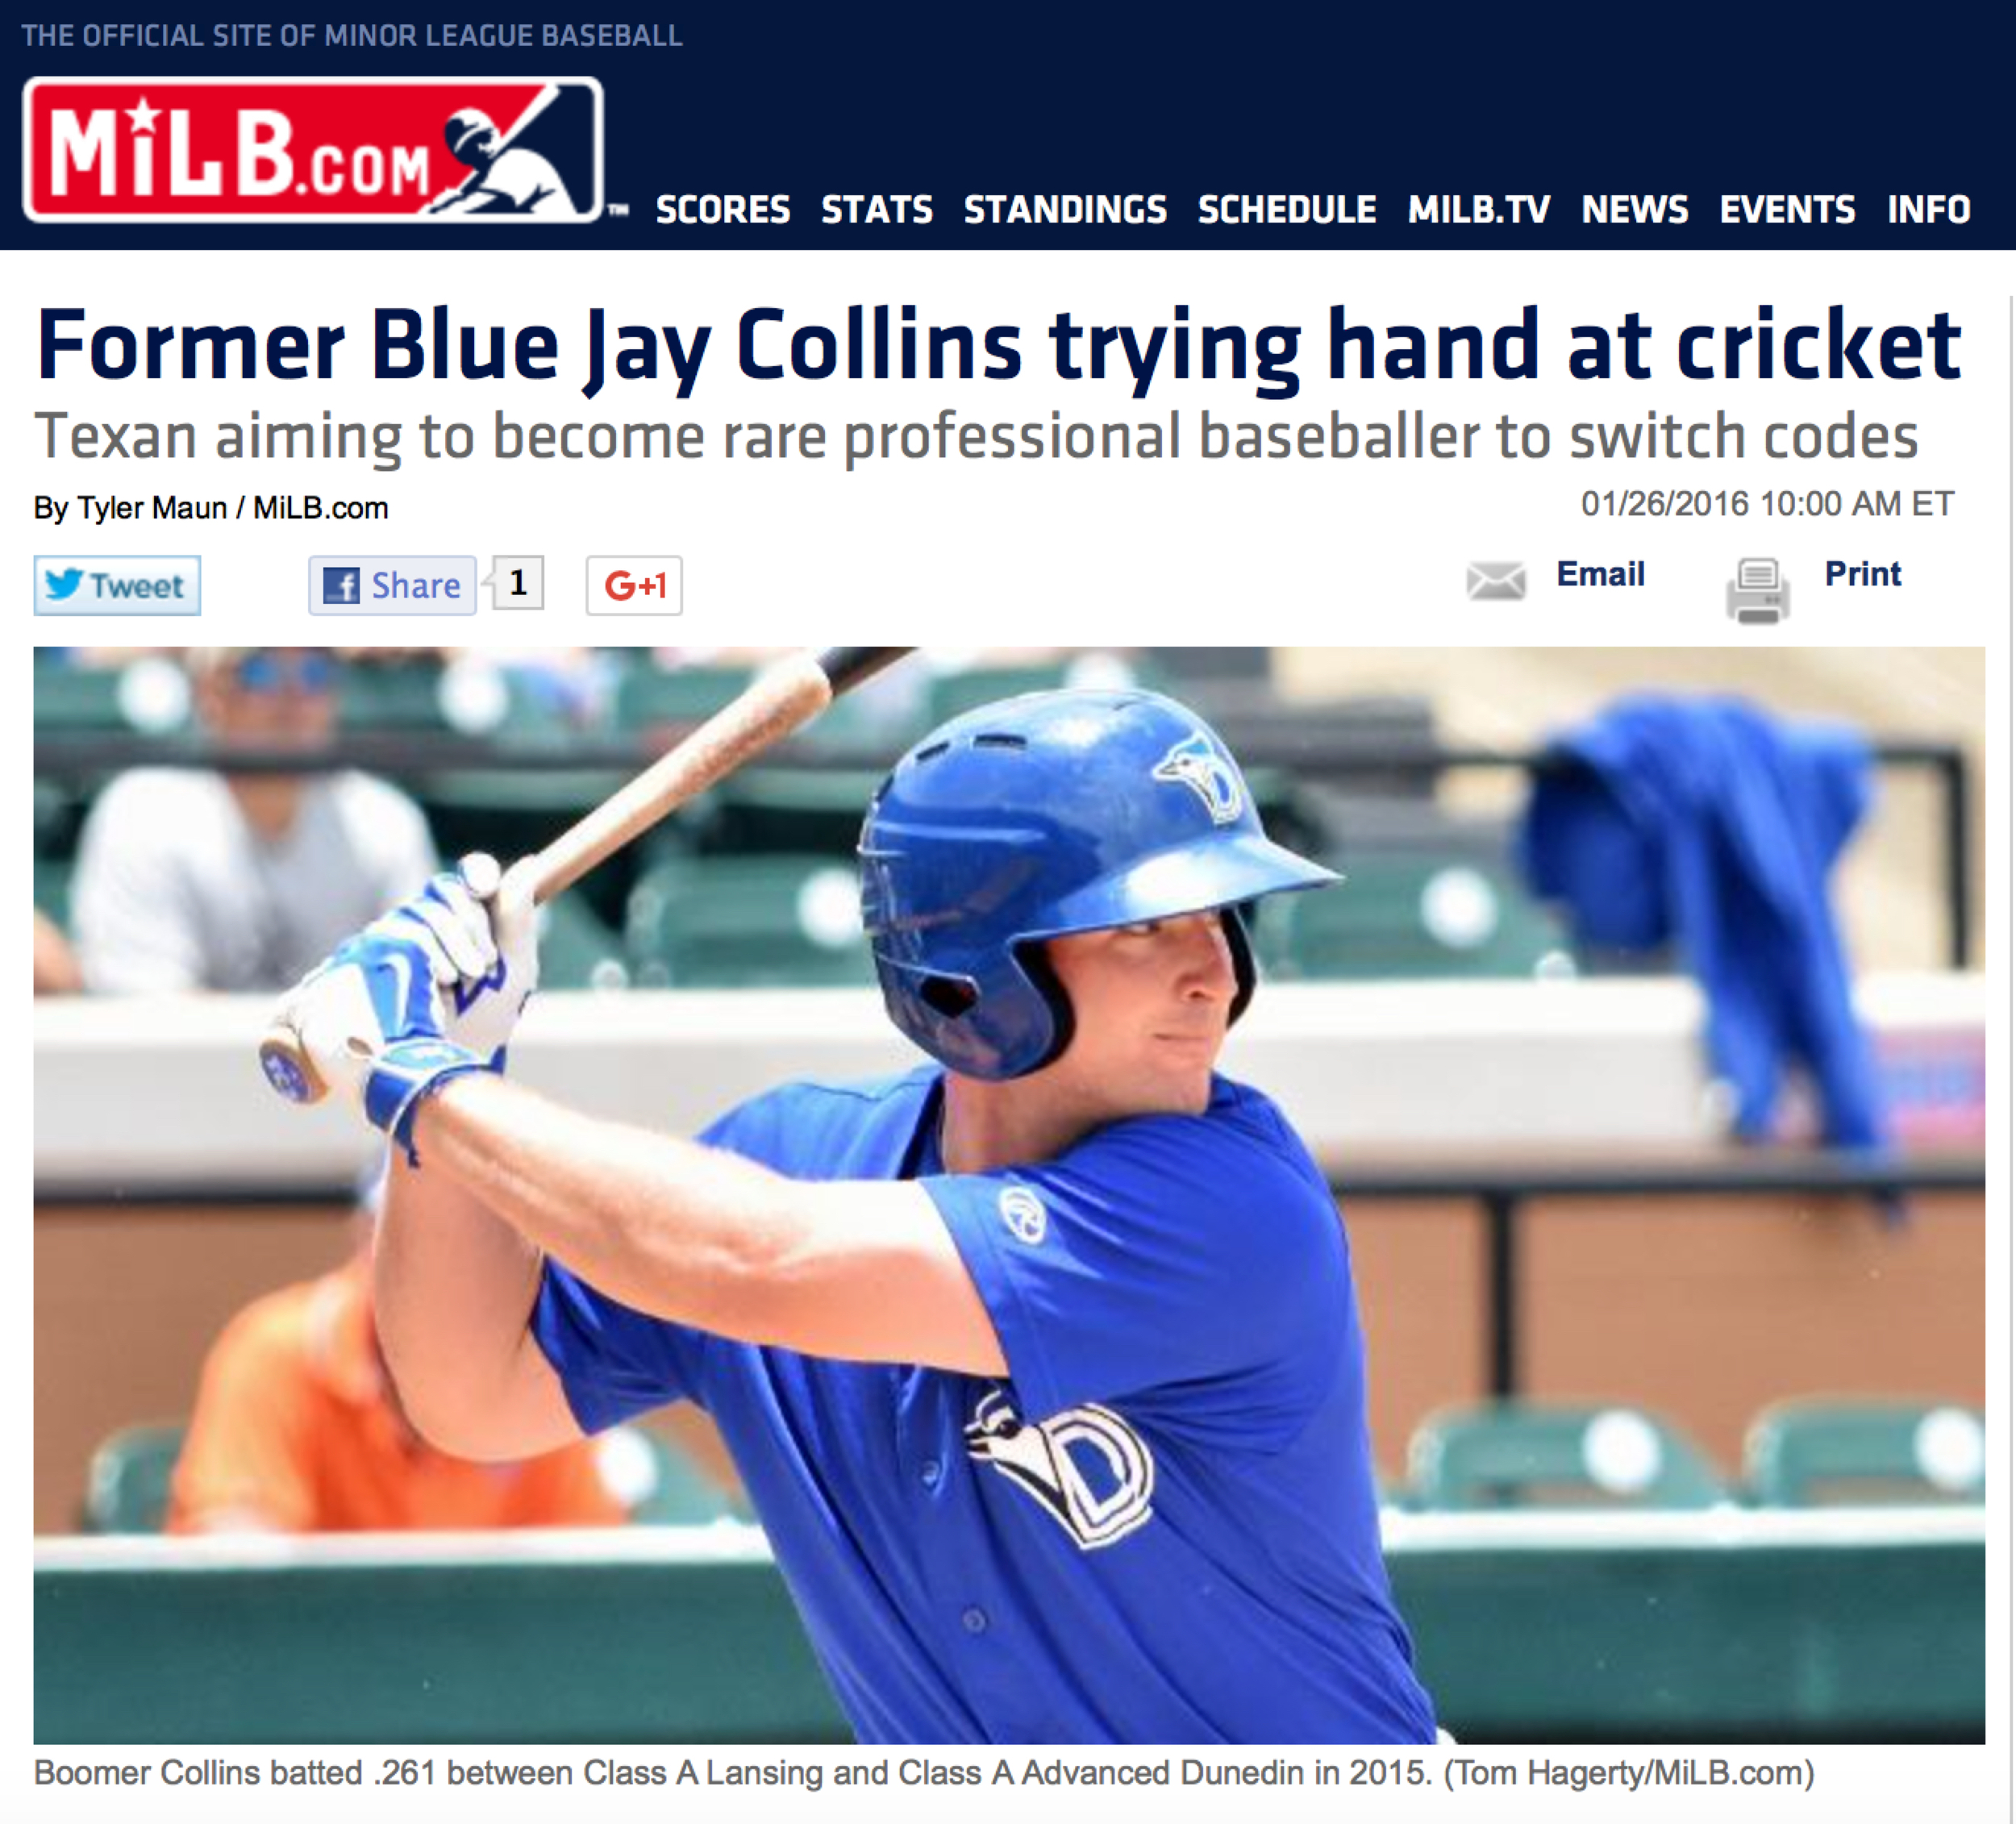 MiLB Boomer Collins pic